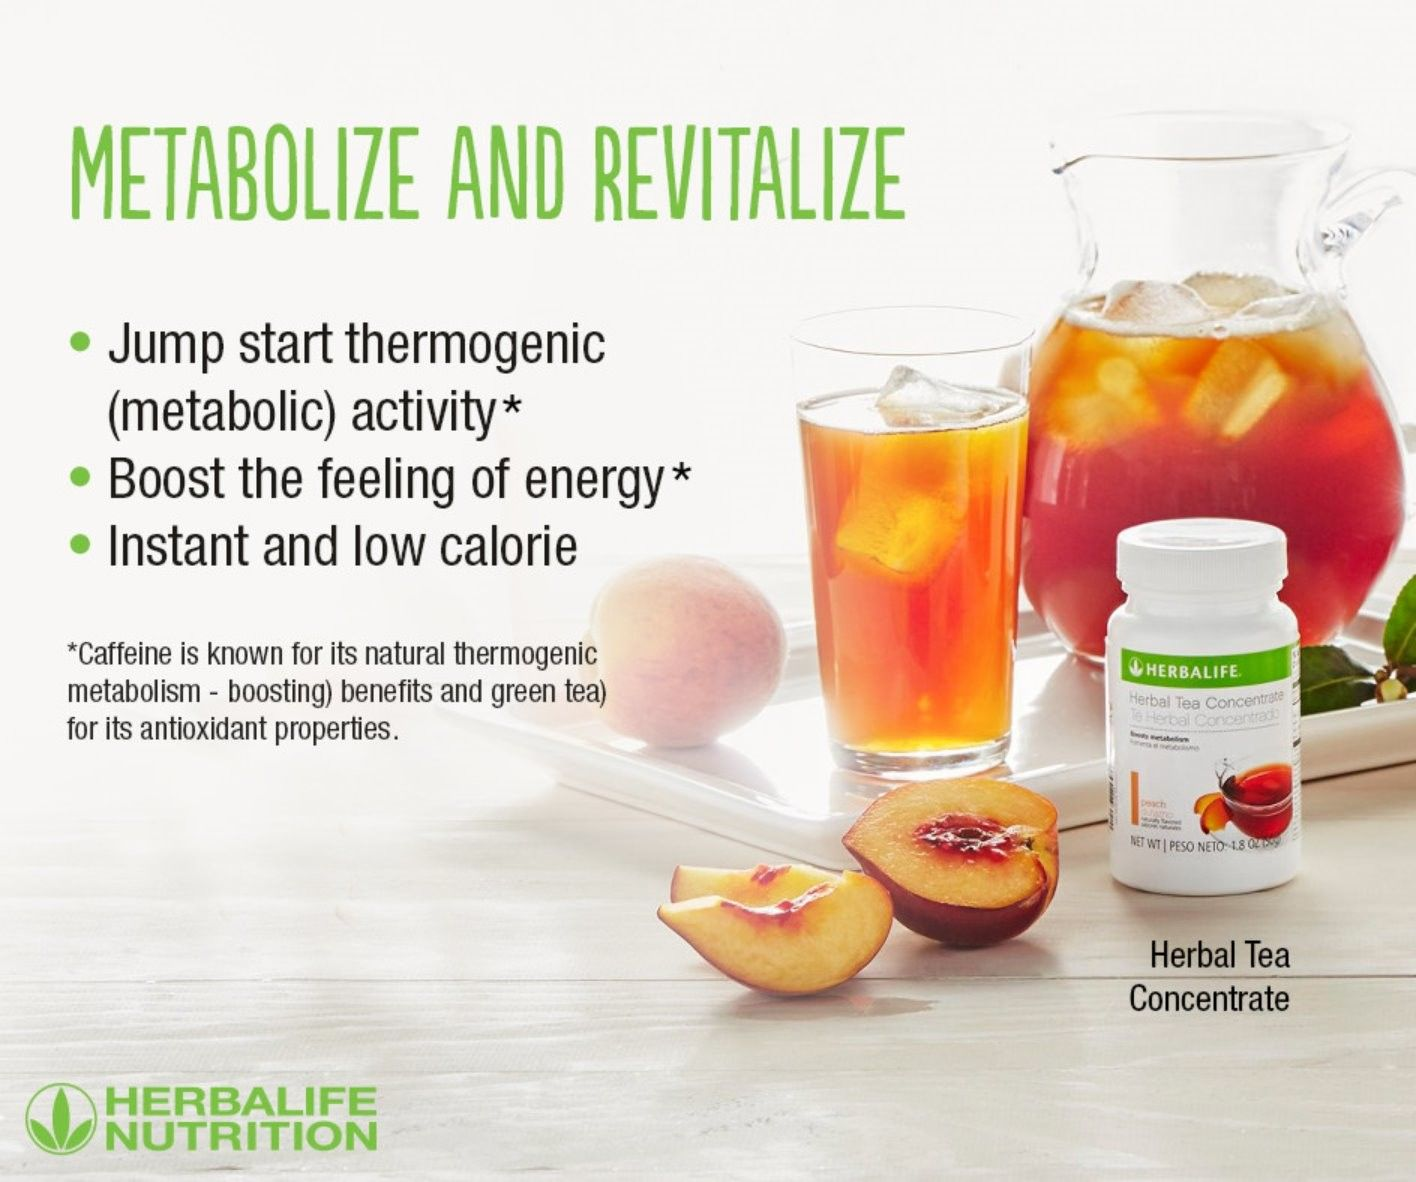 Tea Herbal Herbalife Total Body Nutrition Products In 2019